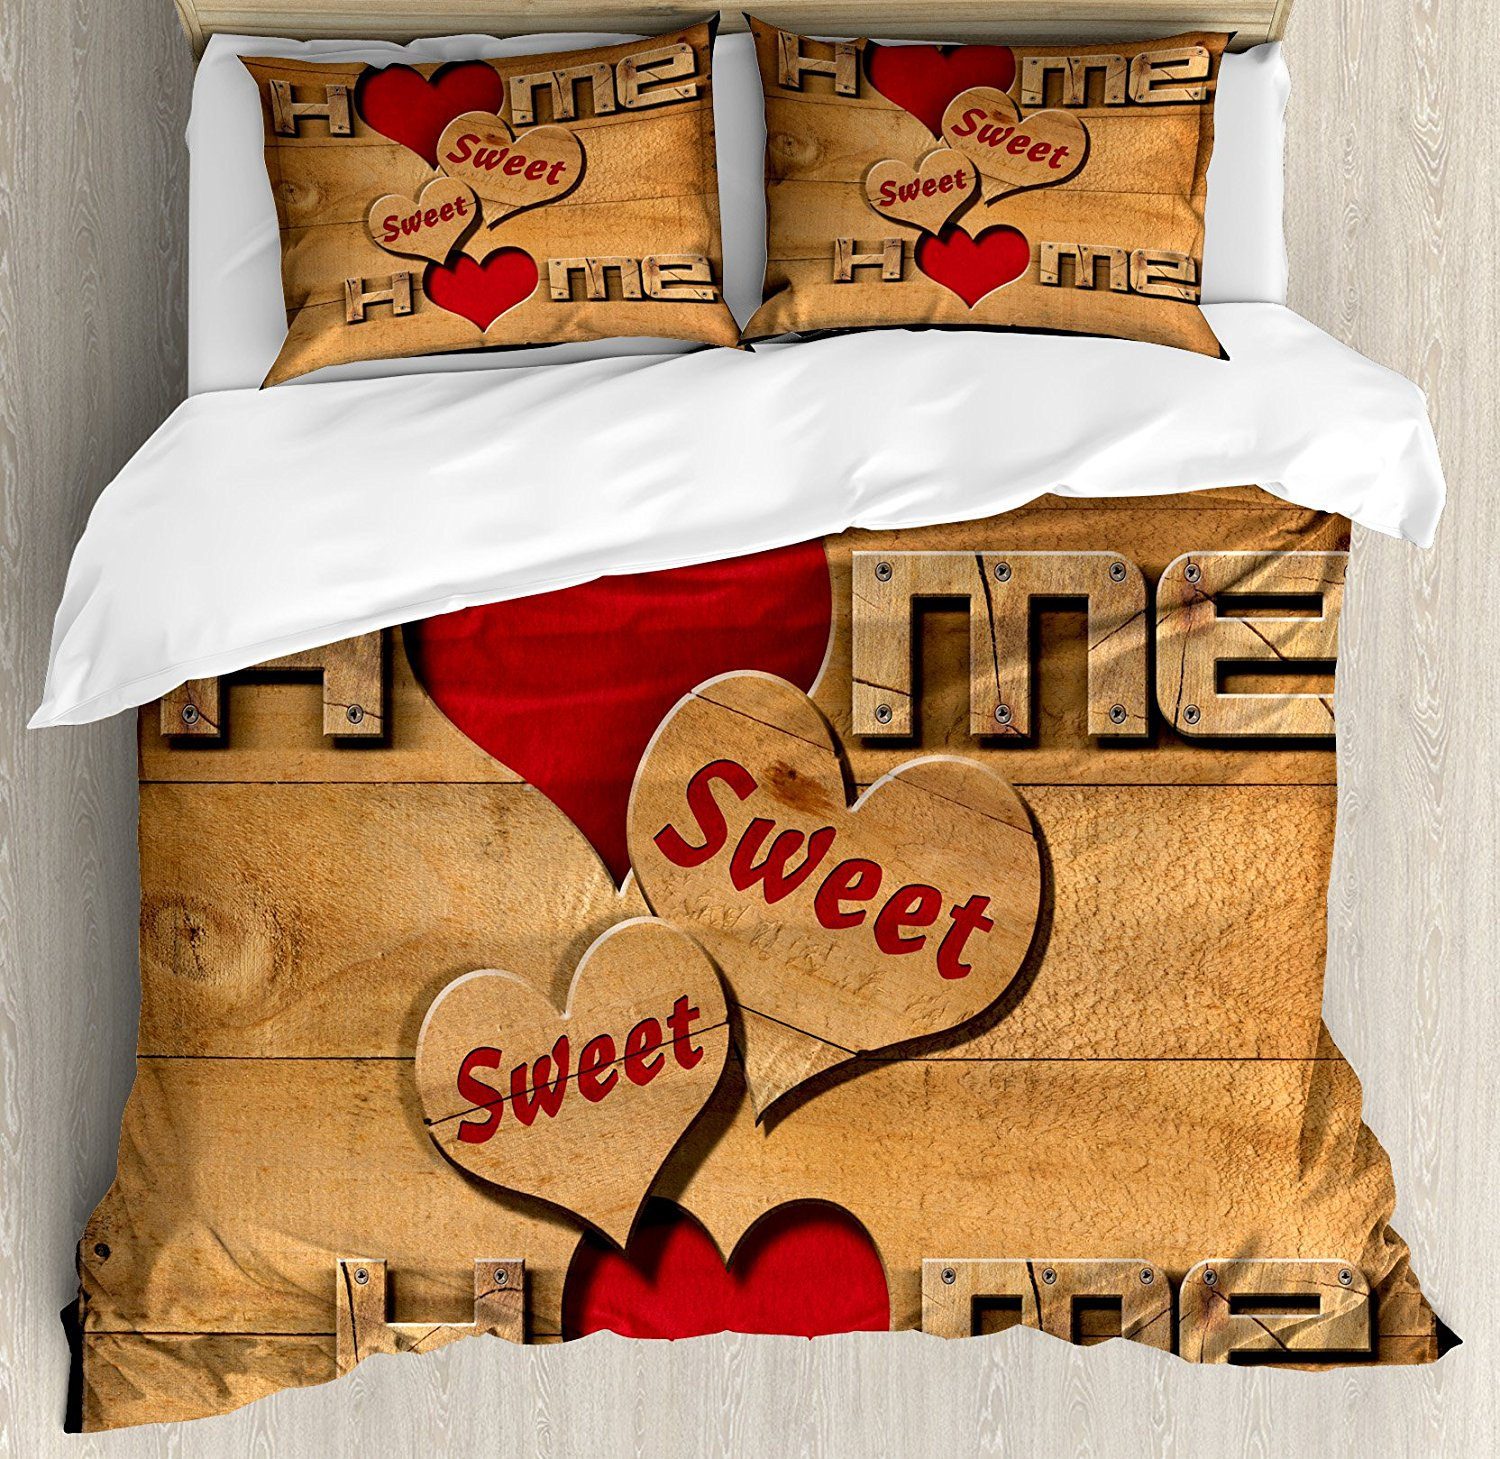 comforters butterfly rustic covers cabins moose bedding duvet sets country collections design satin lodge set cabin home style ideas clearance